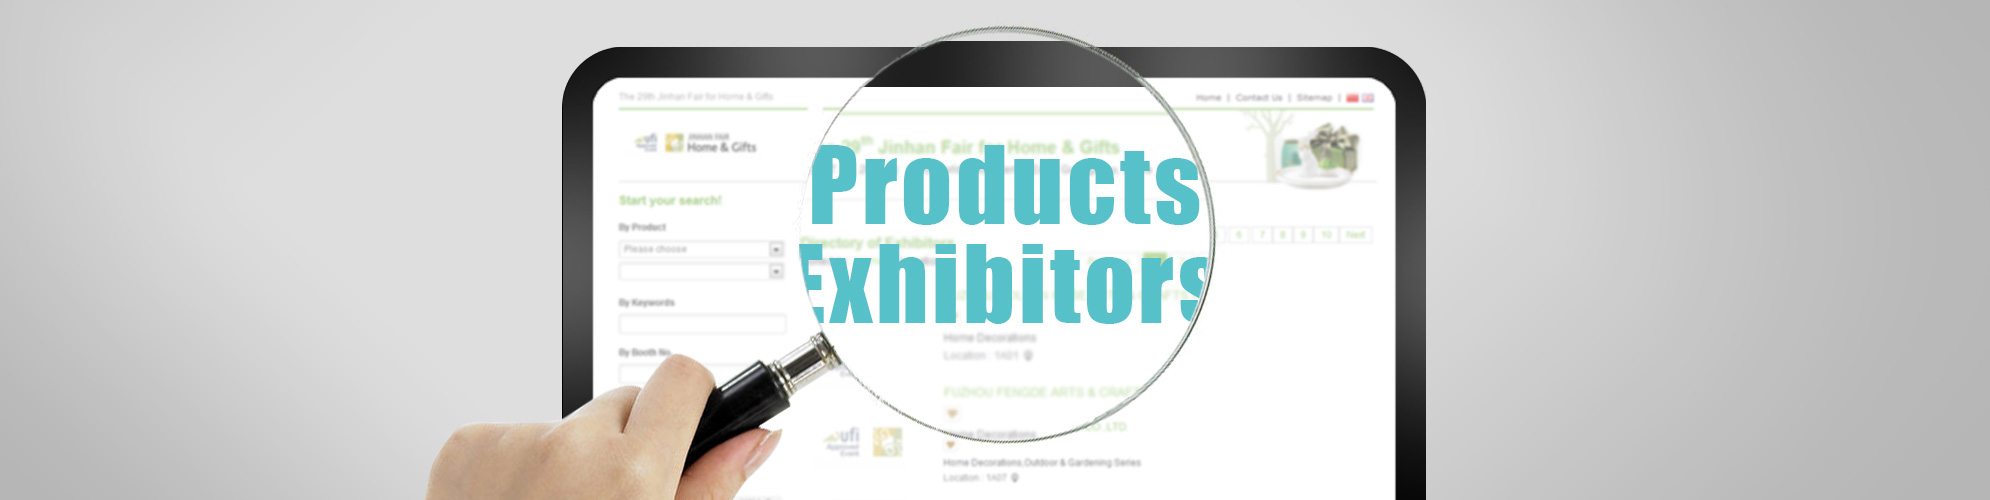 Products & Exhibitors